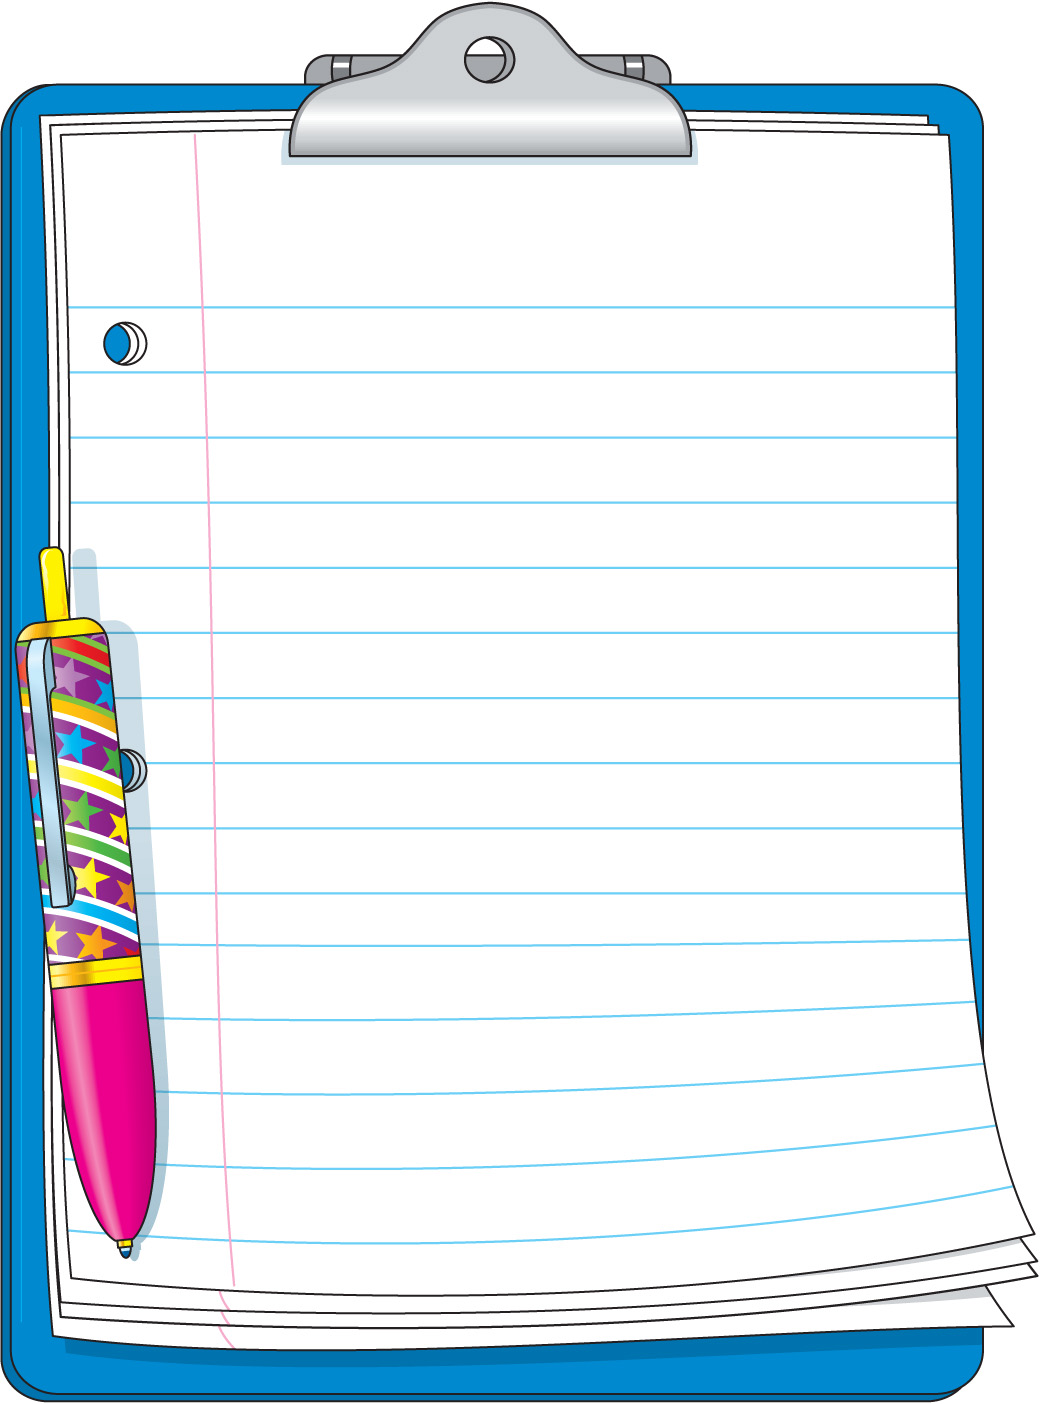 Clip board and pencil clipart picture transparent stock Free Clipboard Cliparts, Download Free Clip Art, Free Clip Art on ... picture transparent stock